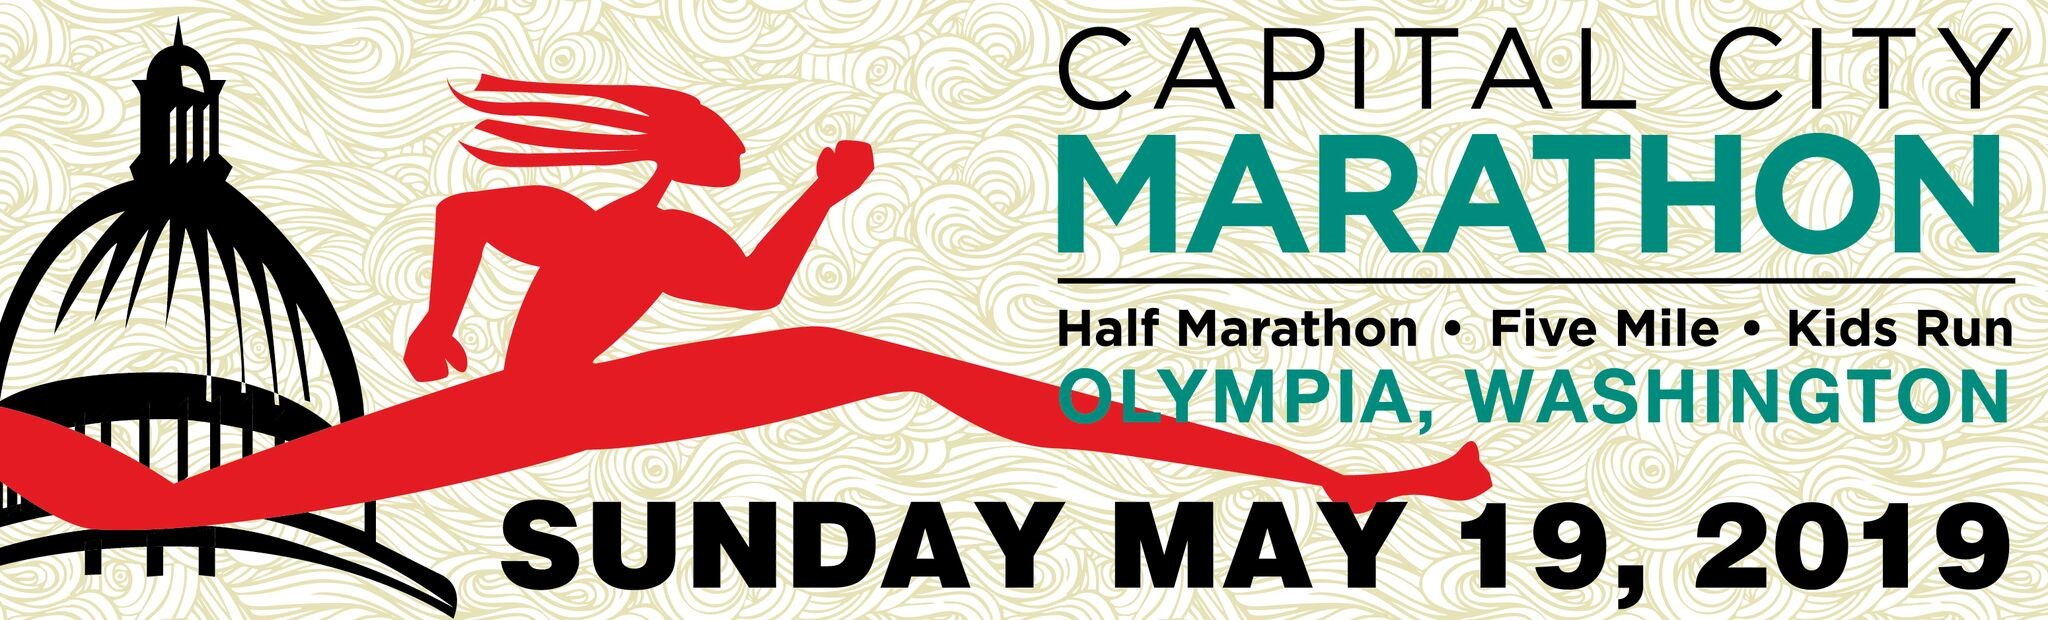 Register for the 2019 Capital City Marathon